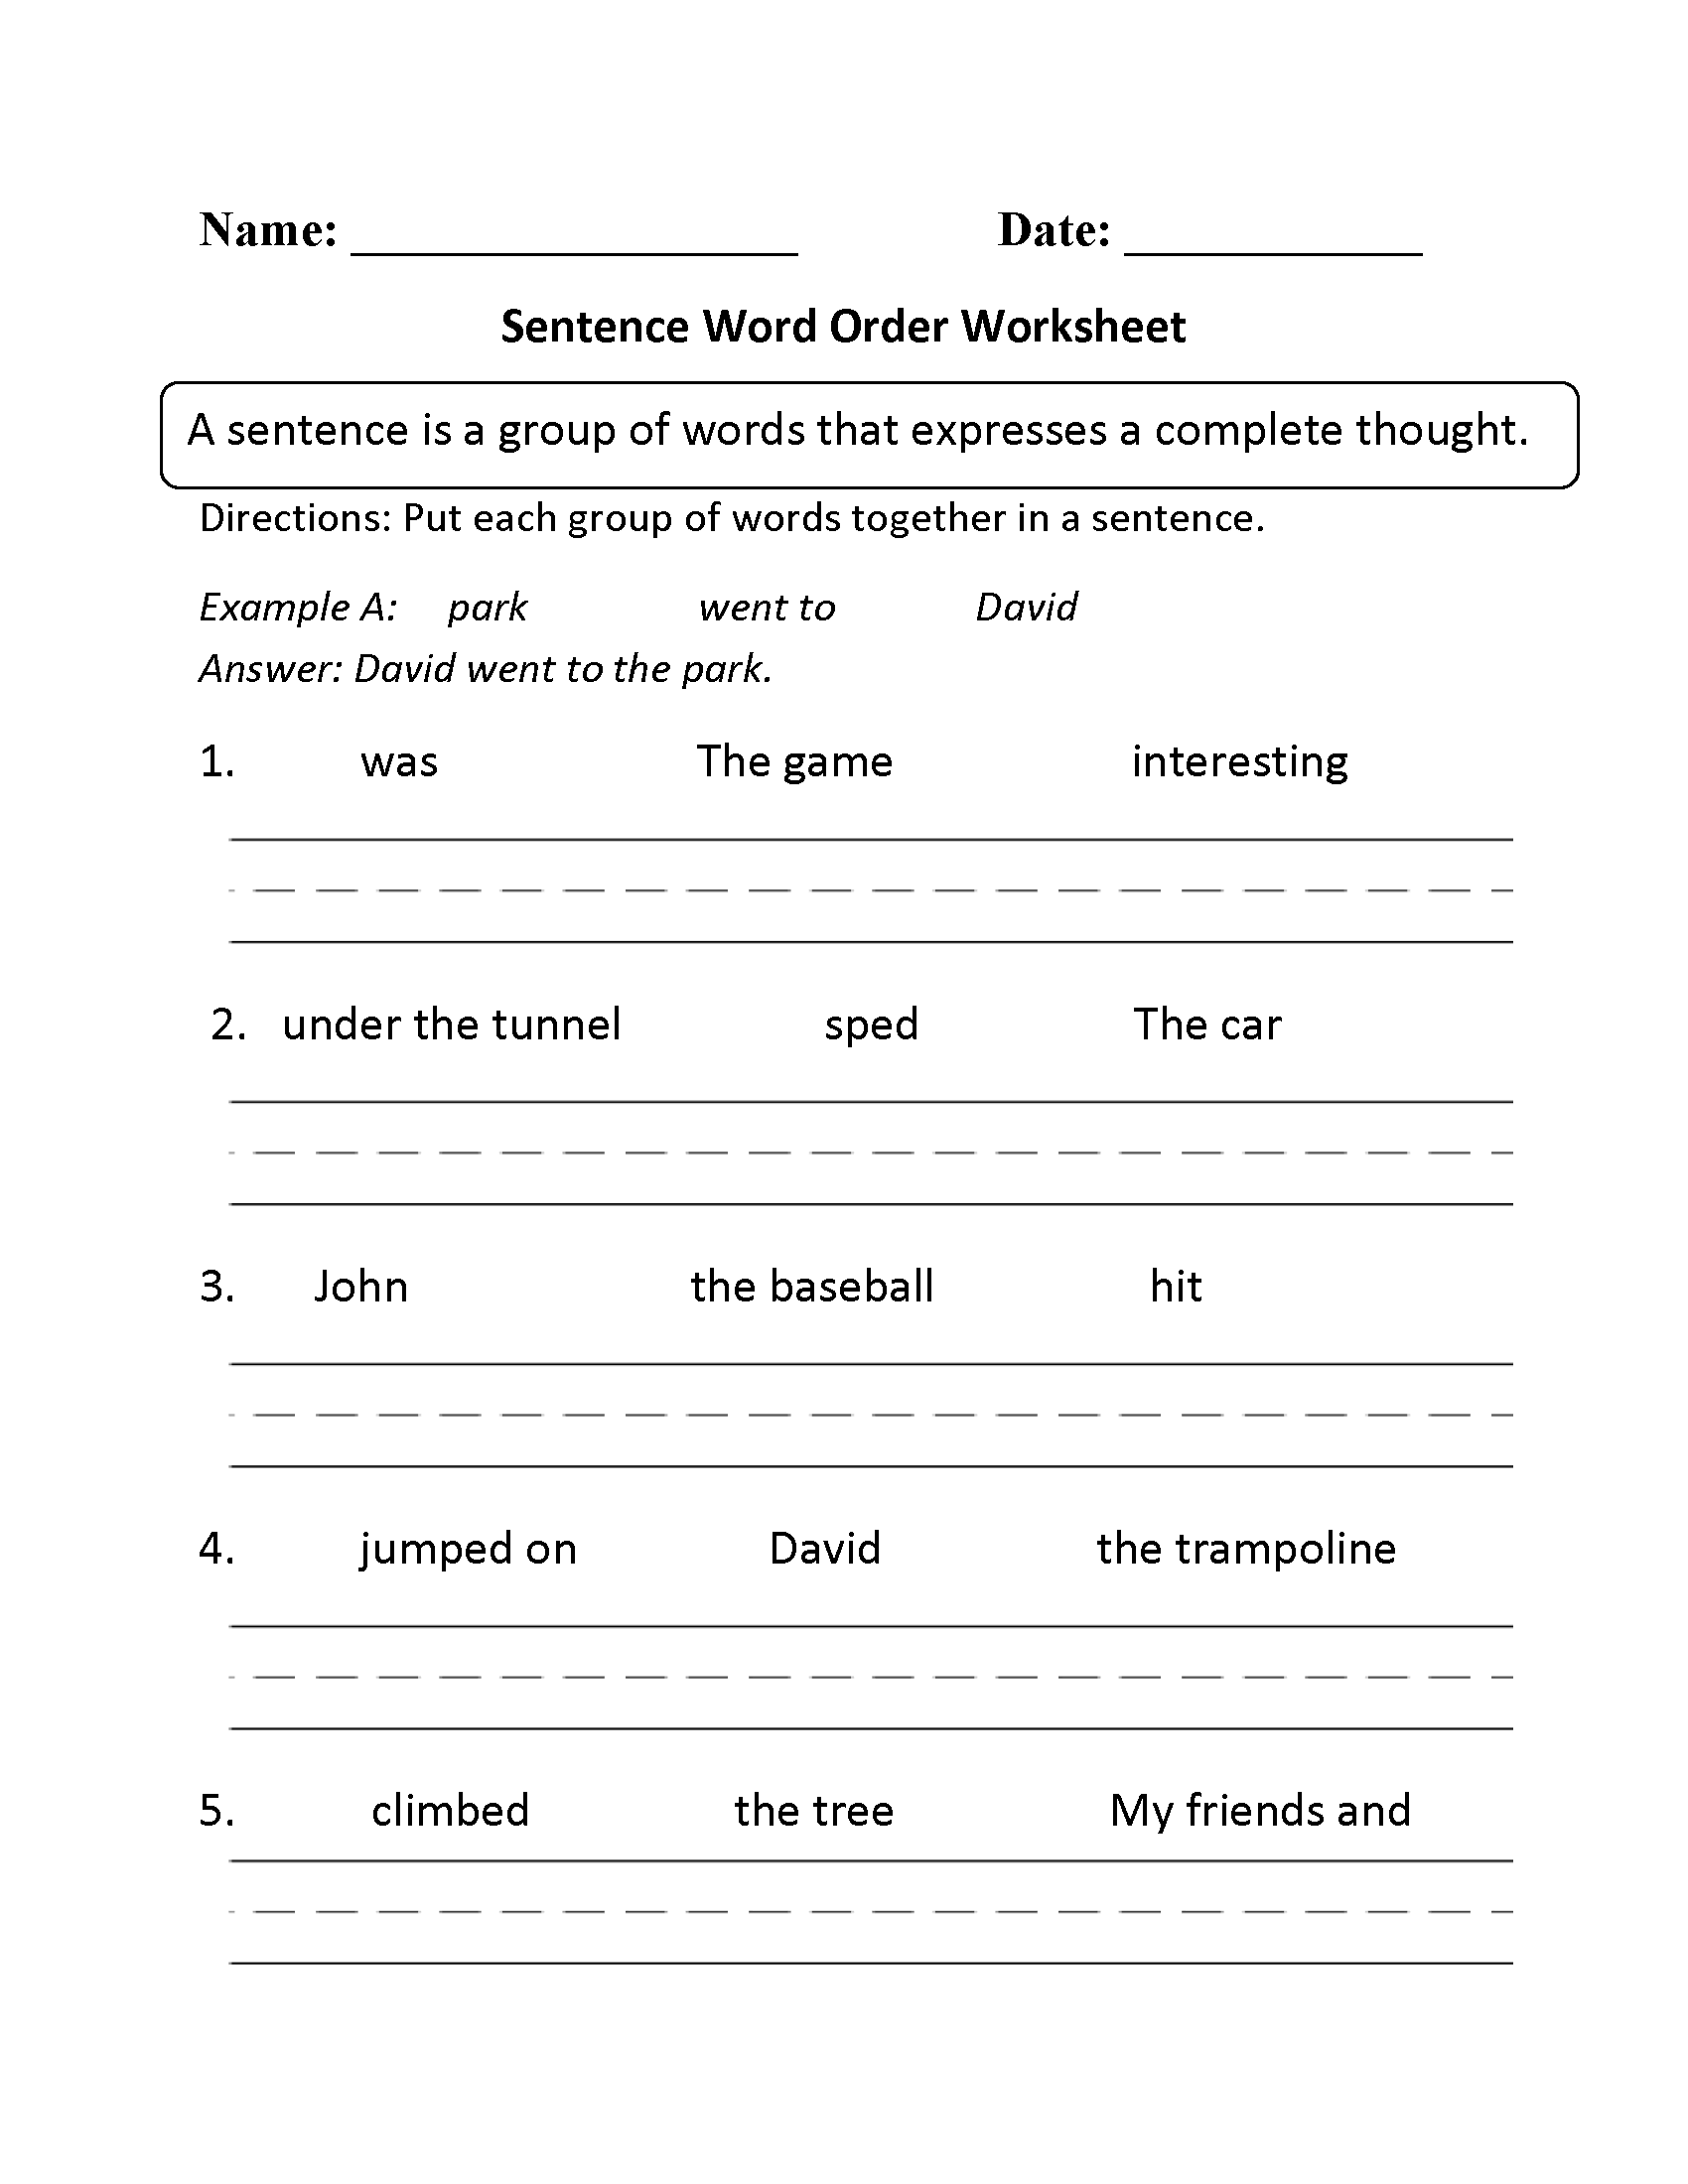 Worksheets Teaching Sentence Structure Worksheets sentence structure worksheets building word order worksheet